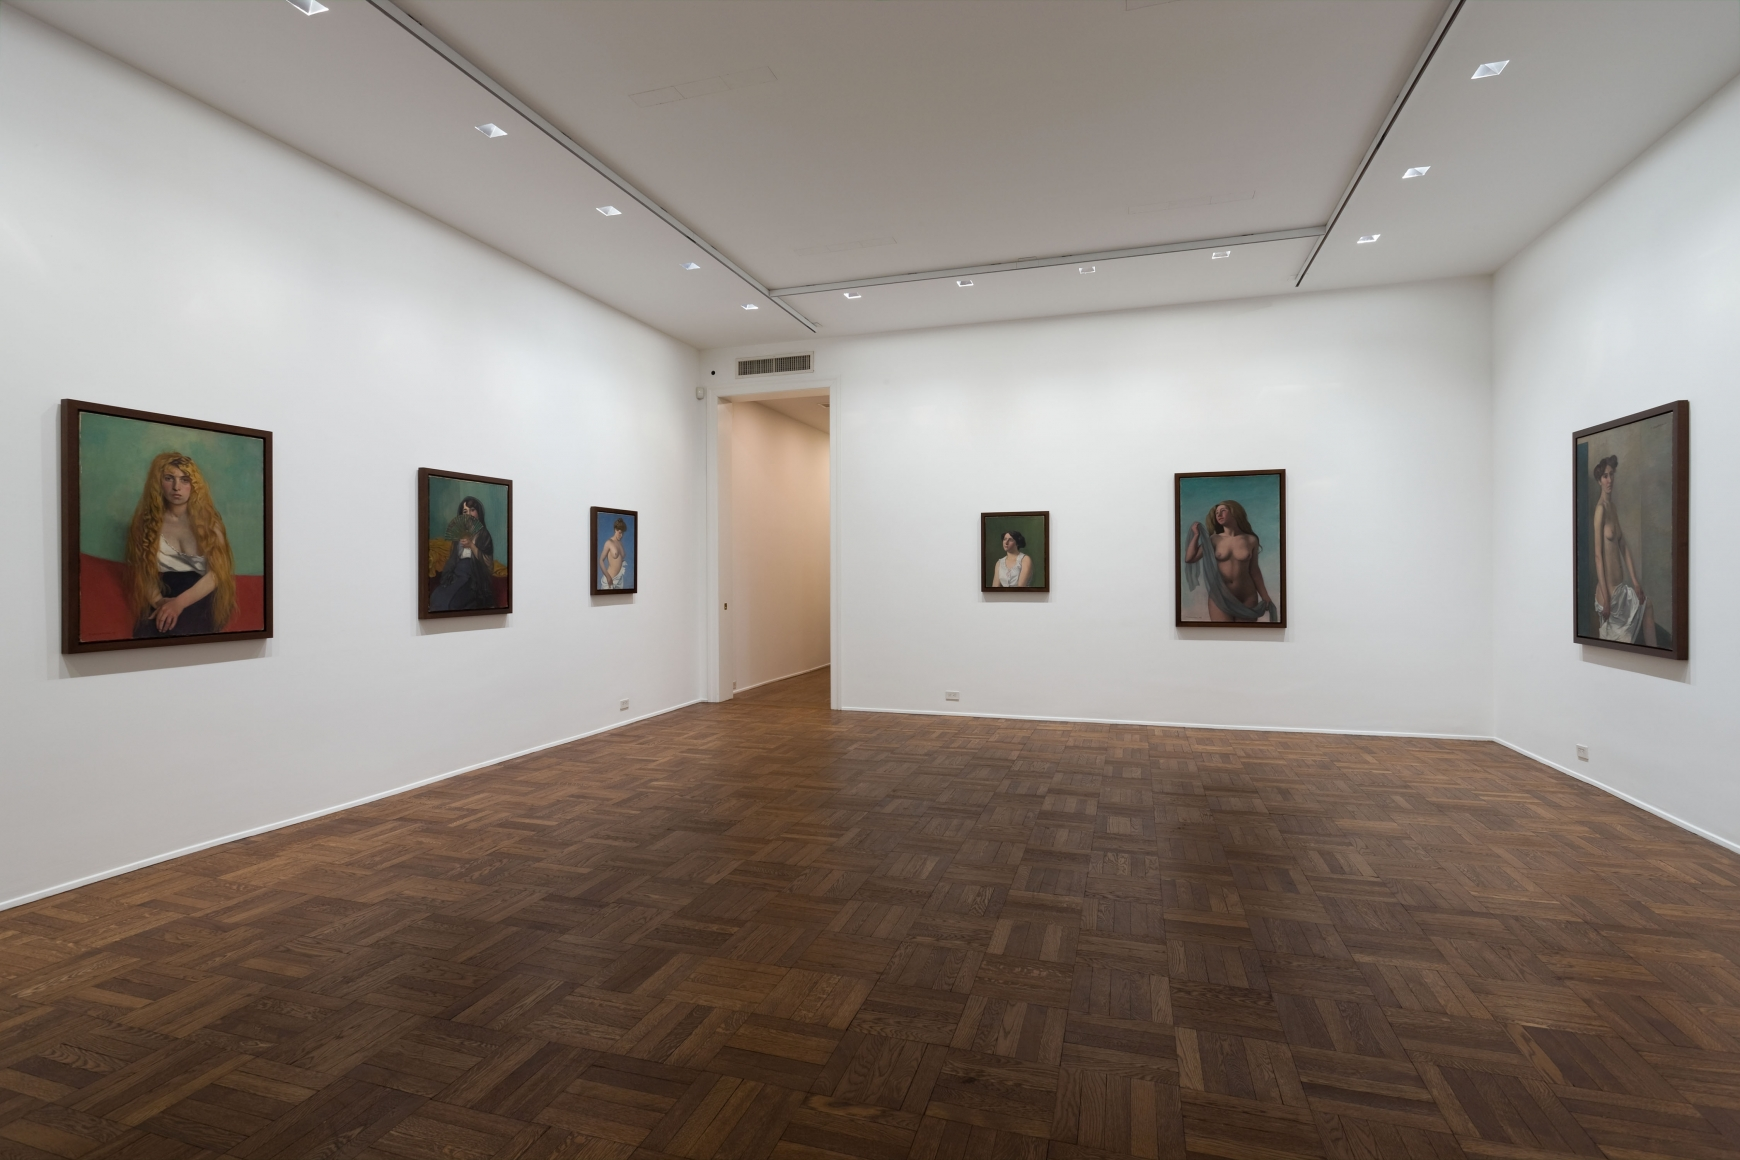 FÉLIX VALLOTTON Paintings 4 February through 10 April 2010 UPPER EAST SIDE, NEW YORK, Installation View 2